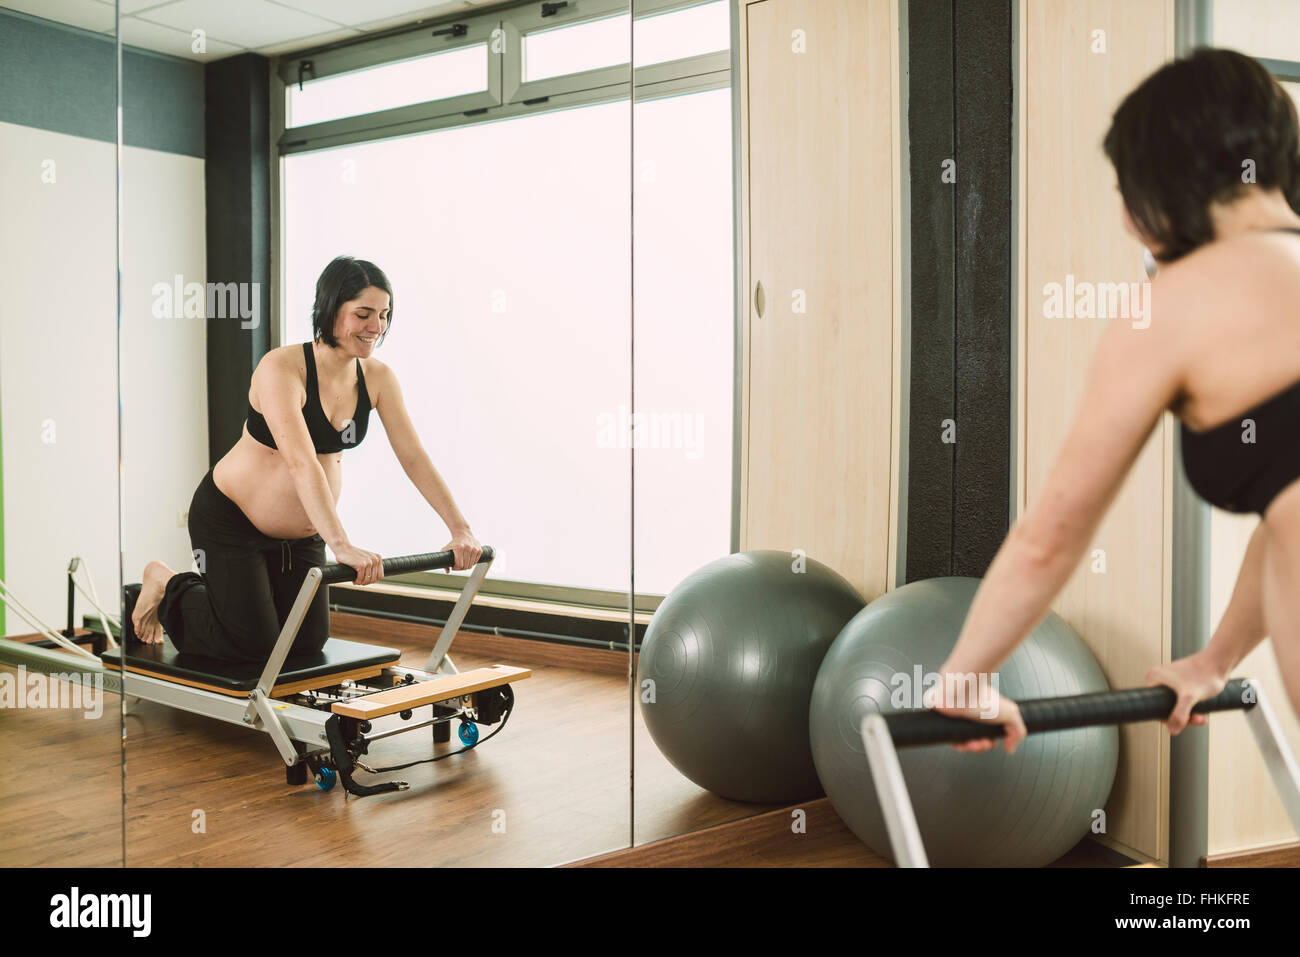 Pregnant woman doing Pilates exercises in a gym - Stock Image